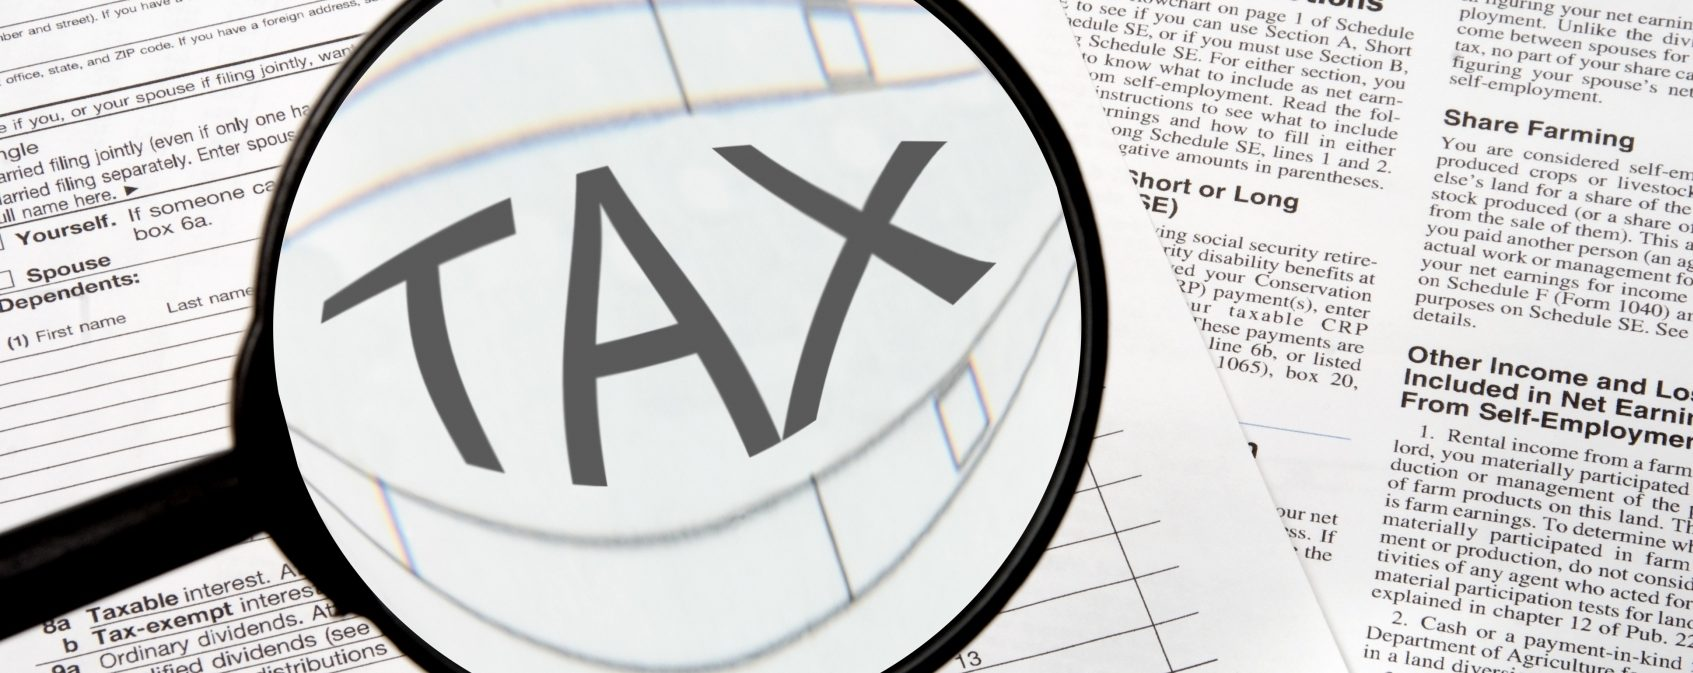 Changes in the U.S. Tax Code